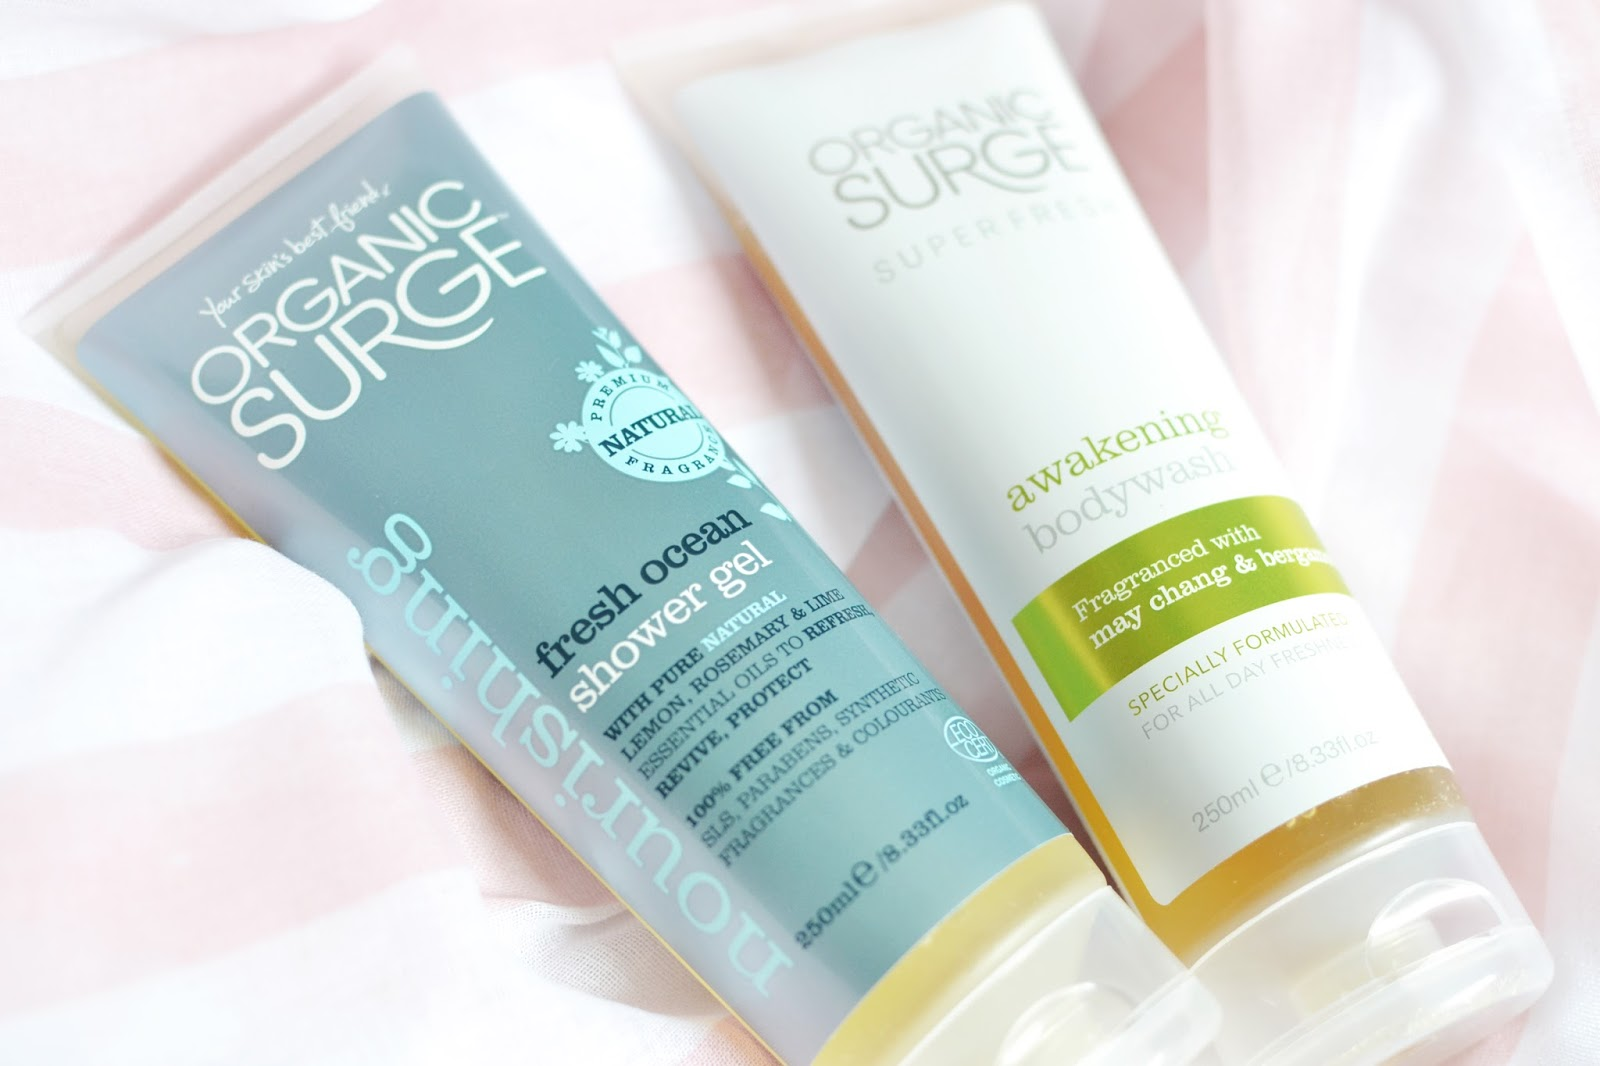 shower gels for dry skin, Organic surge products, organic surge review, natural and organic beauty products